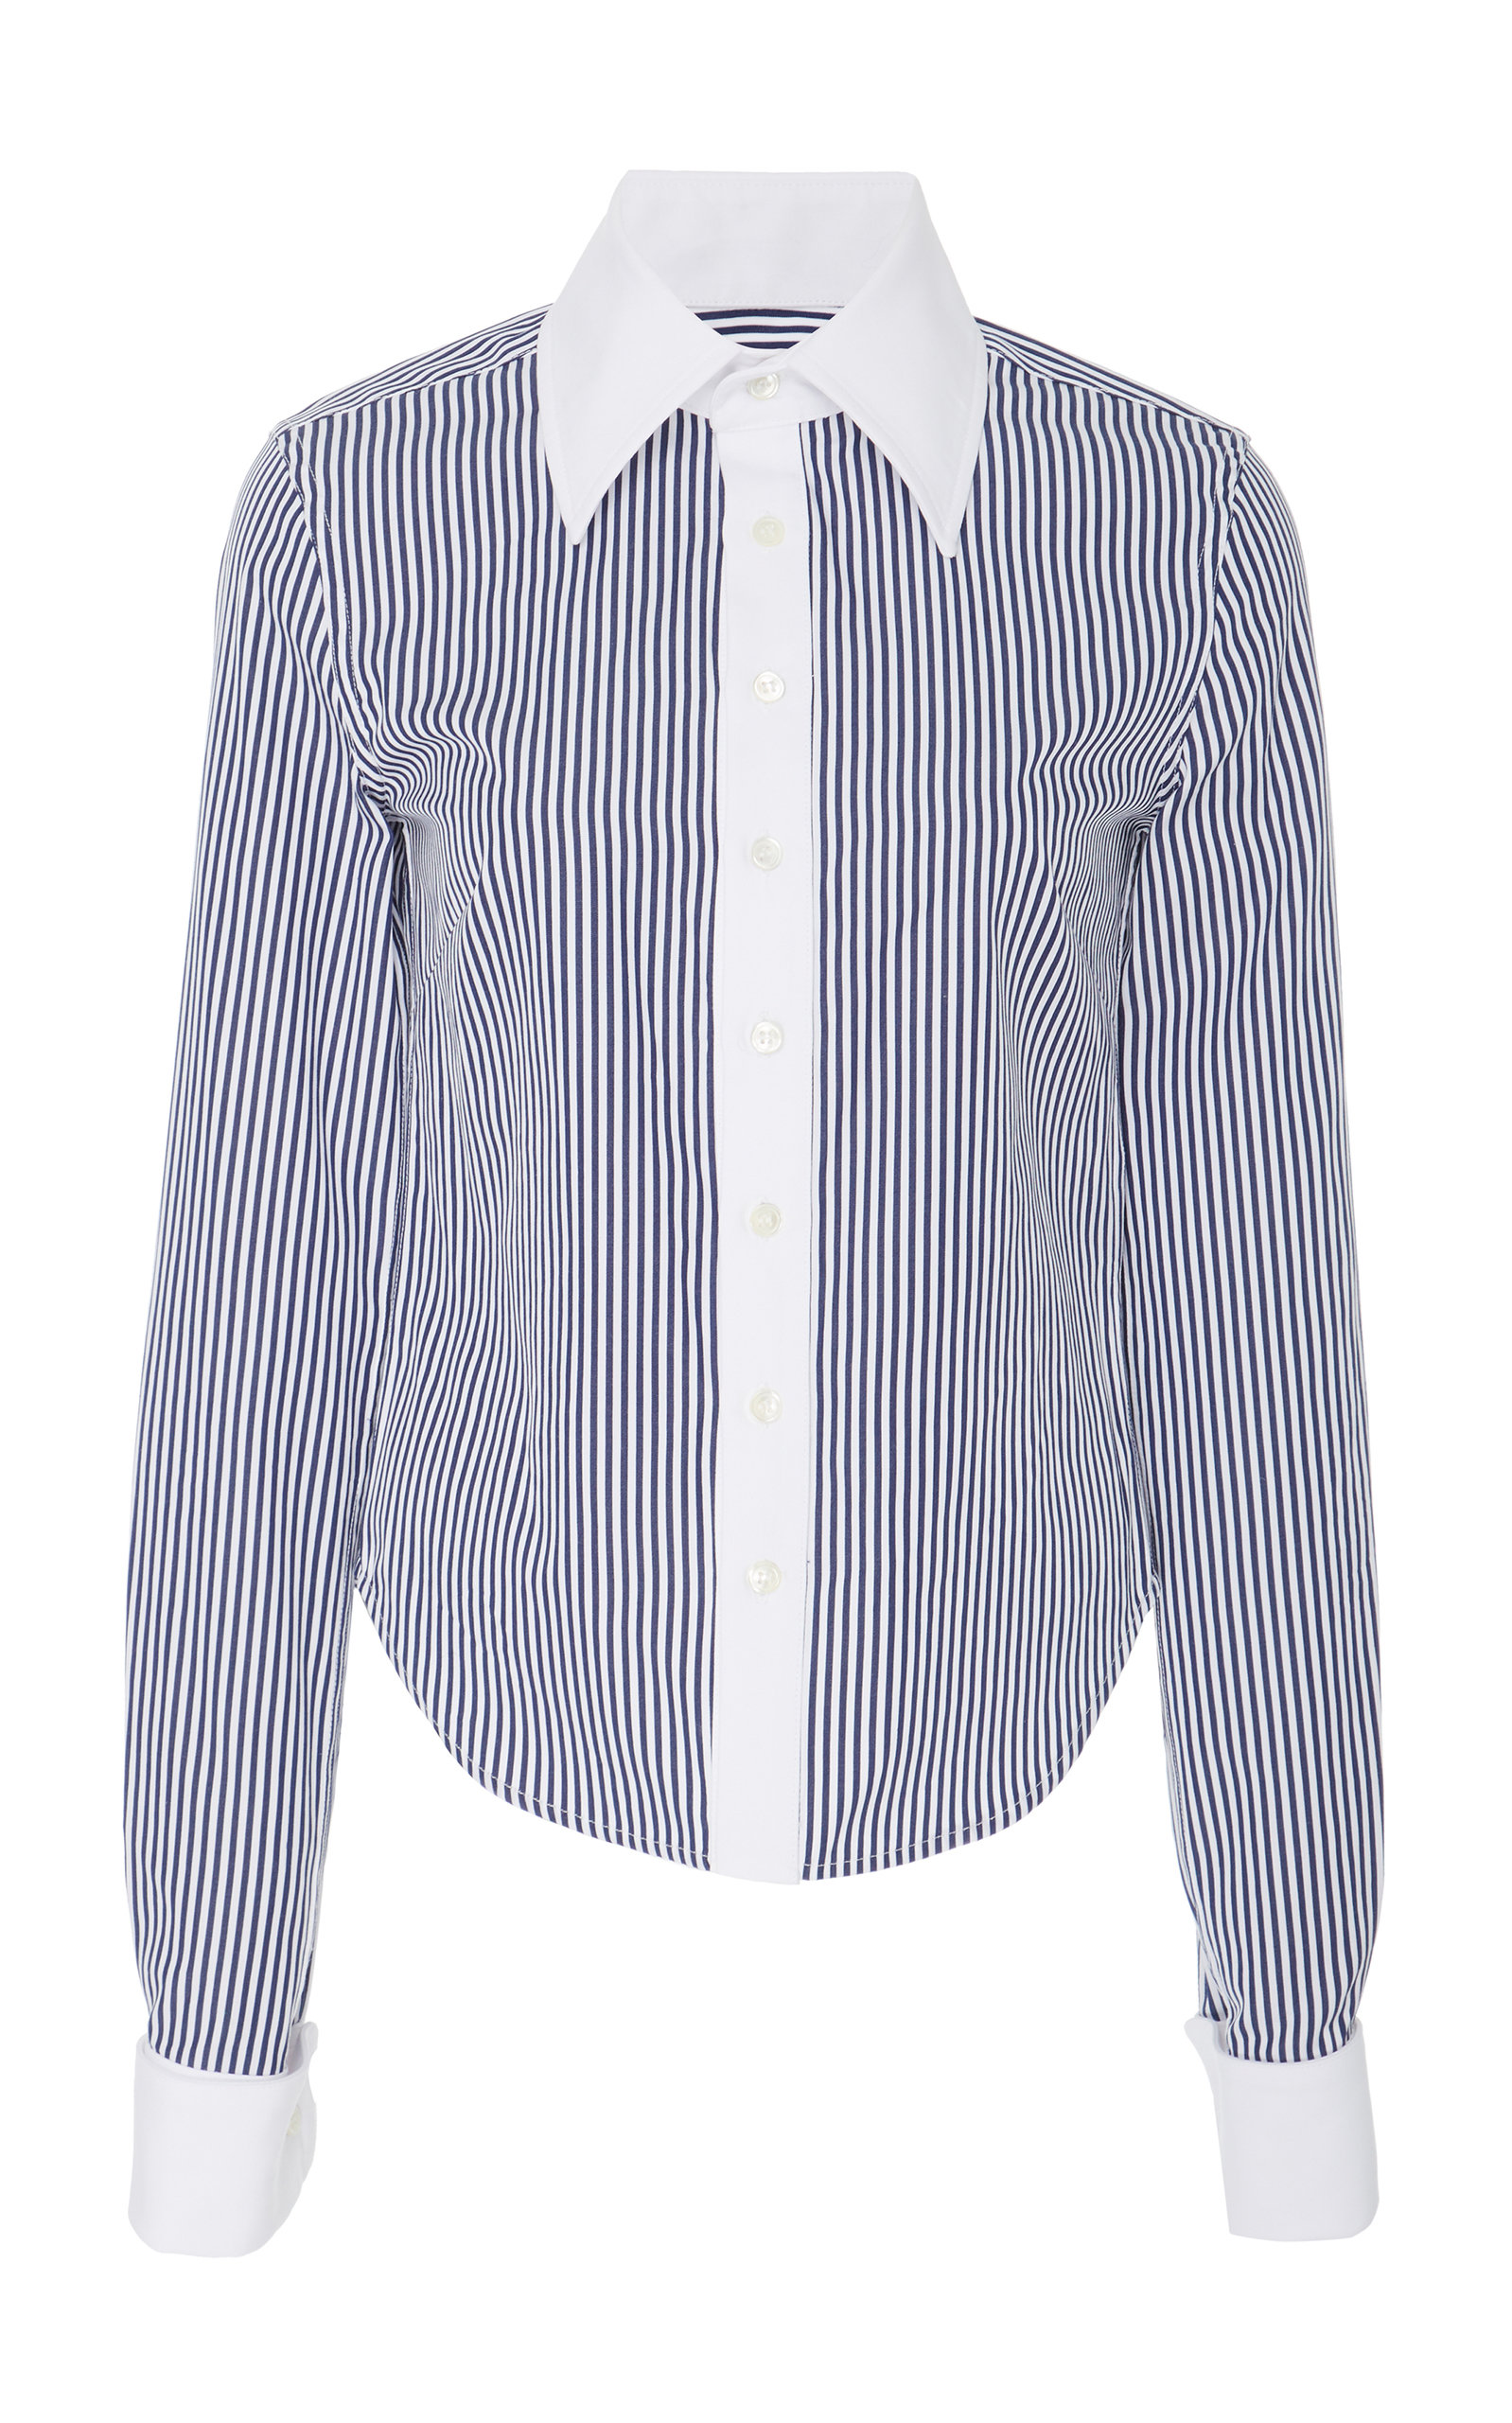 Matthew Adams Dolan TWO-TONE OXFORD SHIRT